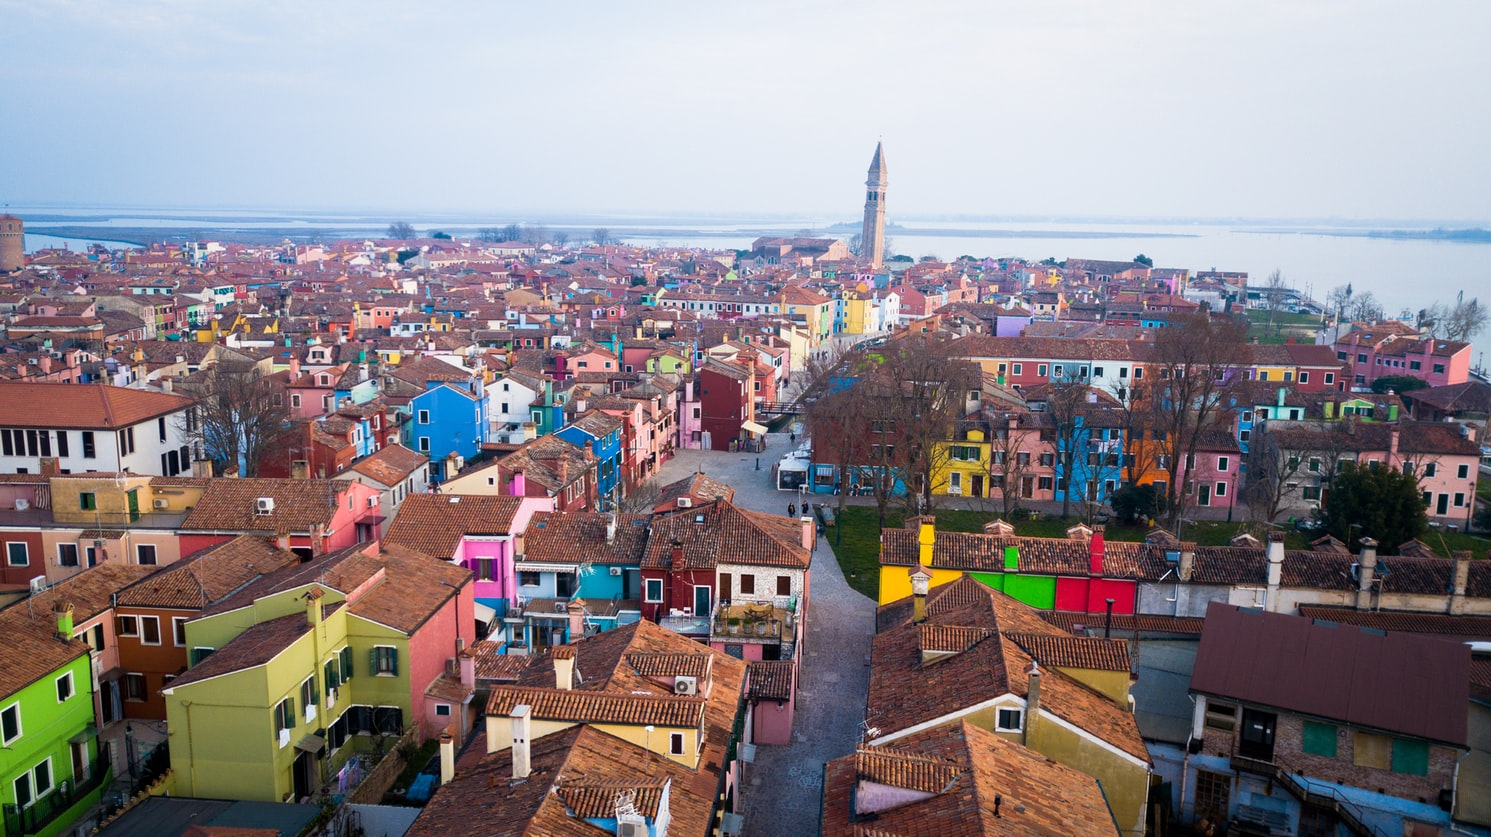 Burano: The colorful island of Italy